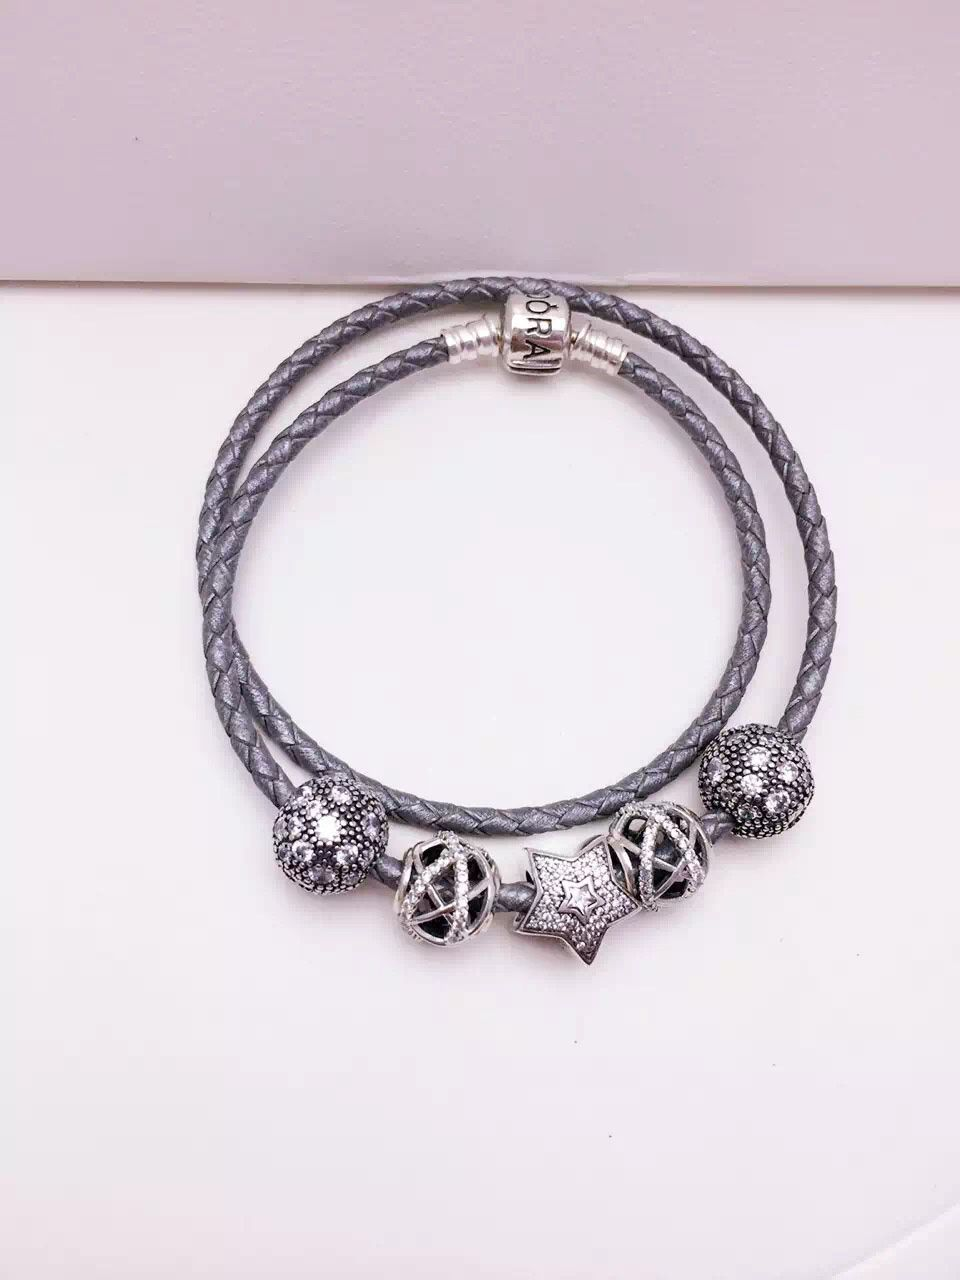 159 Pandora Charm Bracelet Hot Sku Cb01240 Ideas